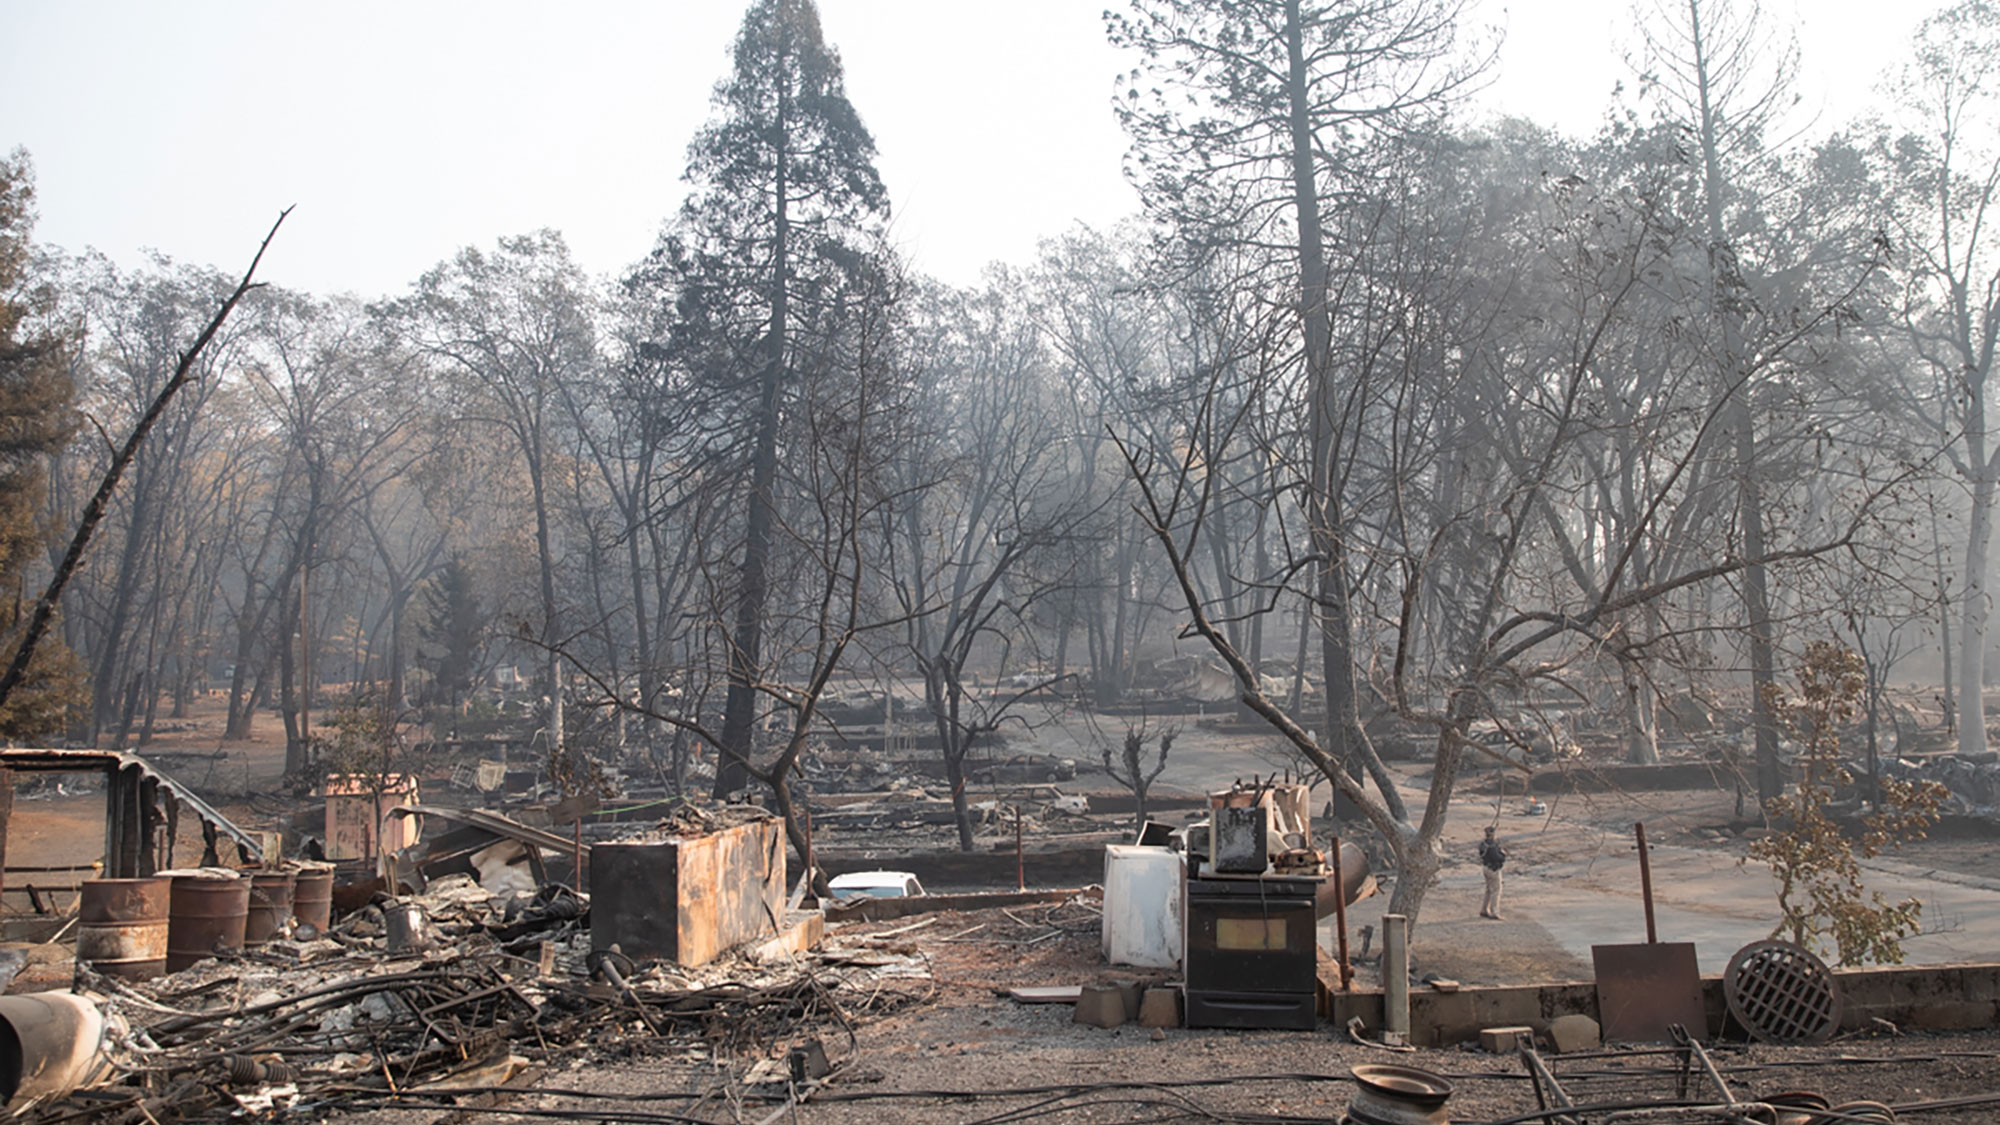 A town in the forest where buildings are burned down, trees are blackened ash, with smokey air.